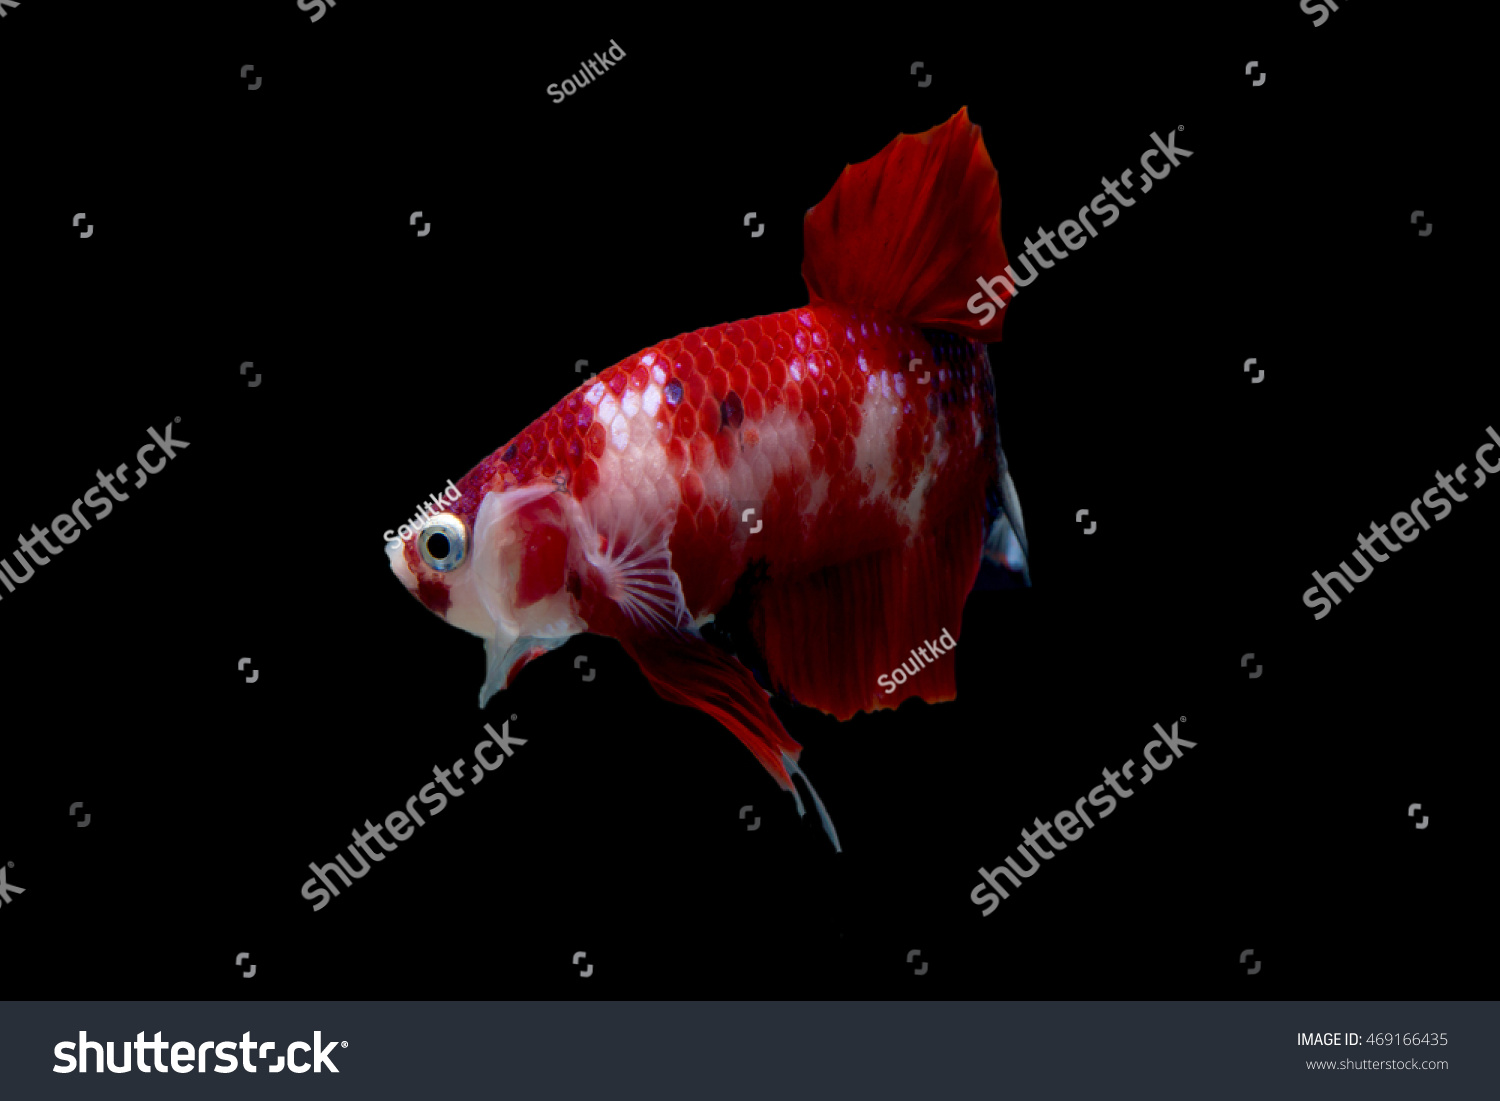 Red Cute Betta Fish Short Tail Stock Photo (Royalty Free) 469166435 ...